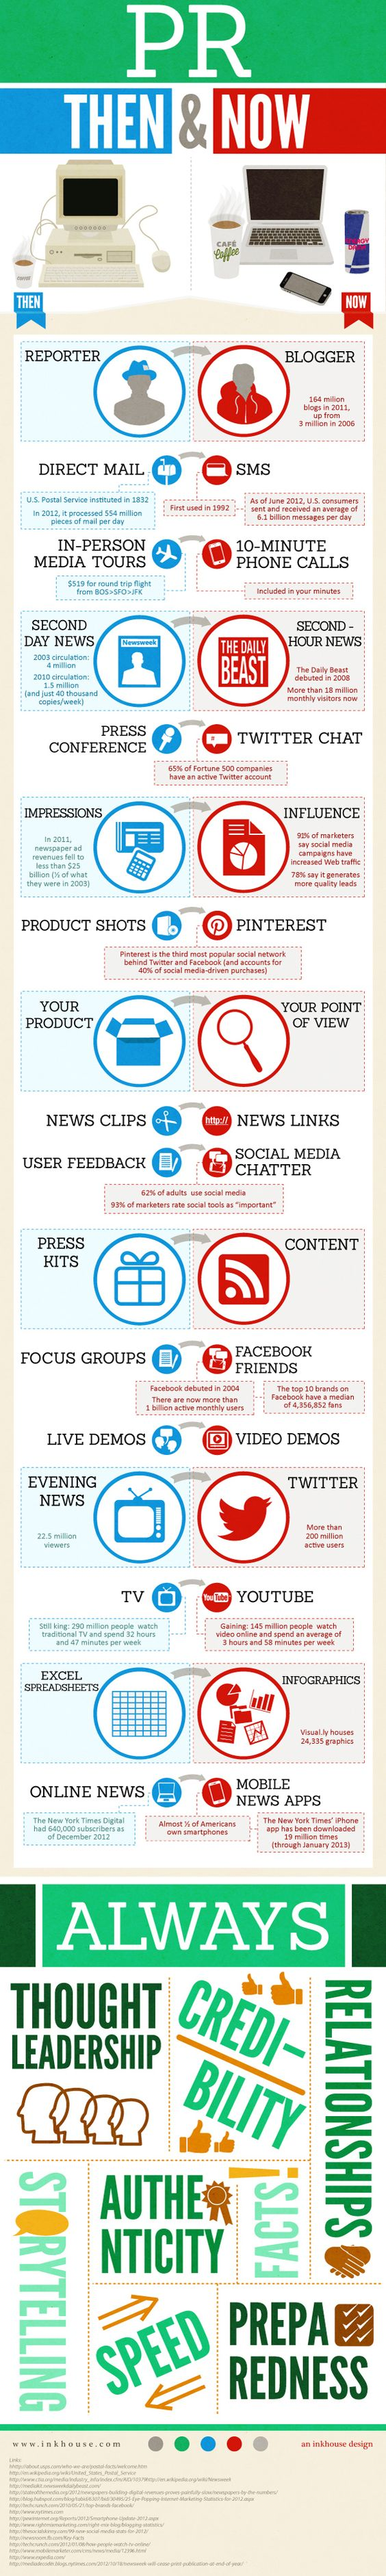 Journalism and Communication Then and Now #infographic #social media